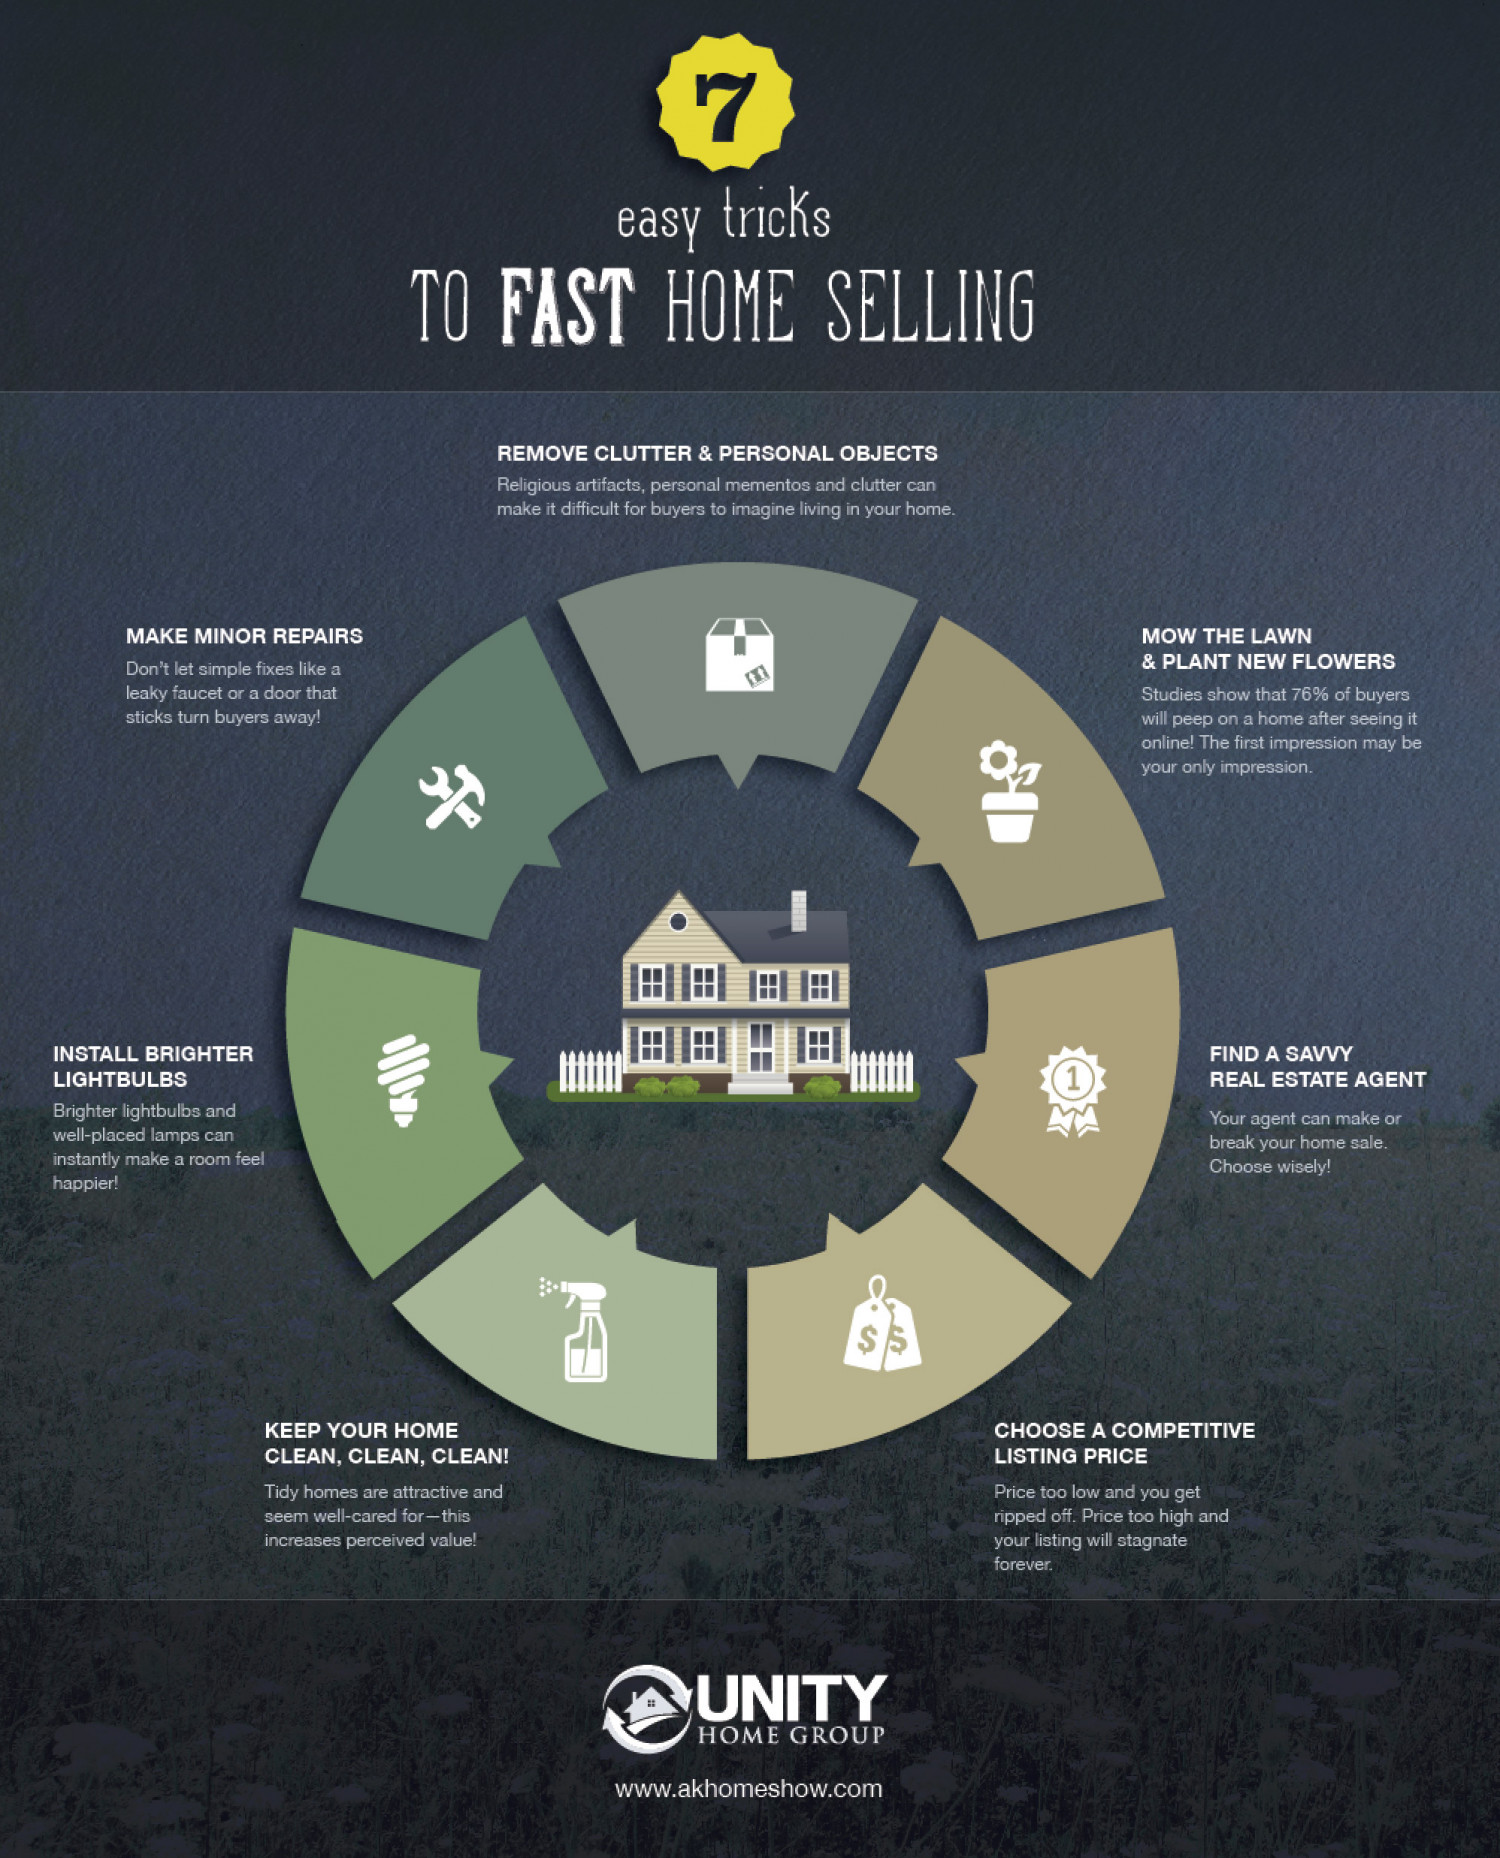 7 Easy Tricks To Fast Home Selling Infographic